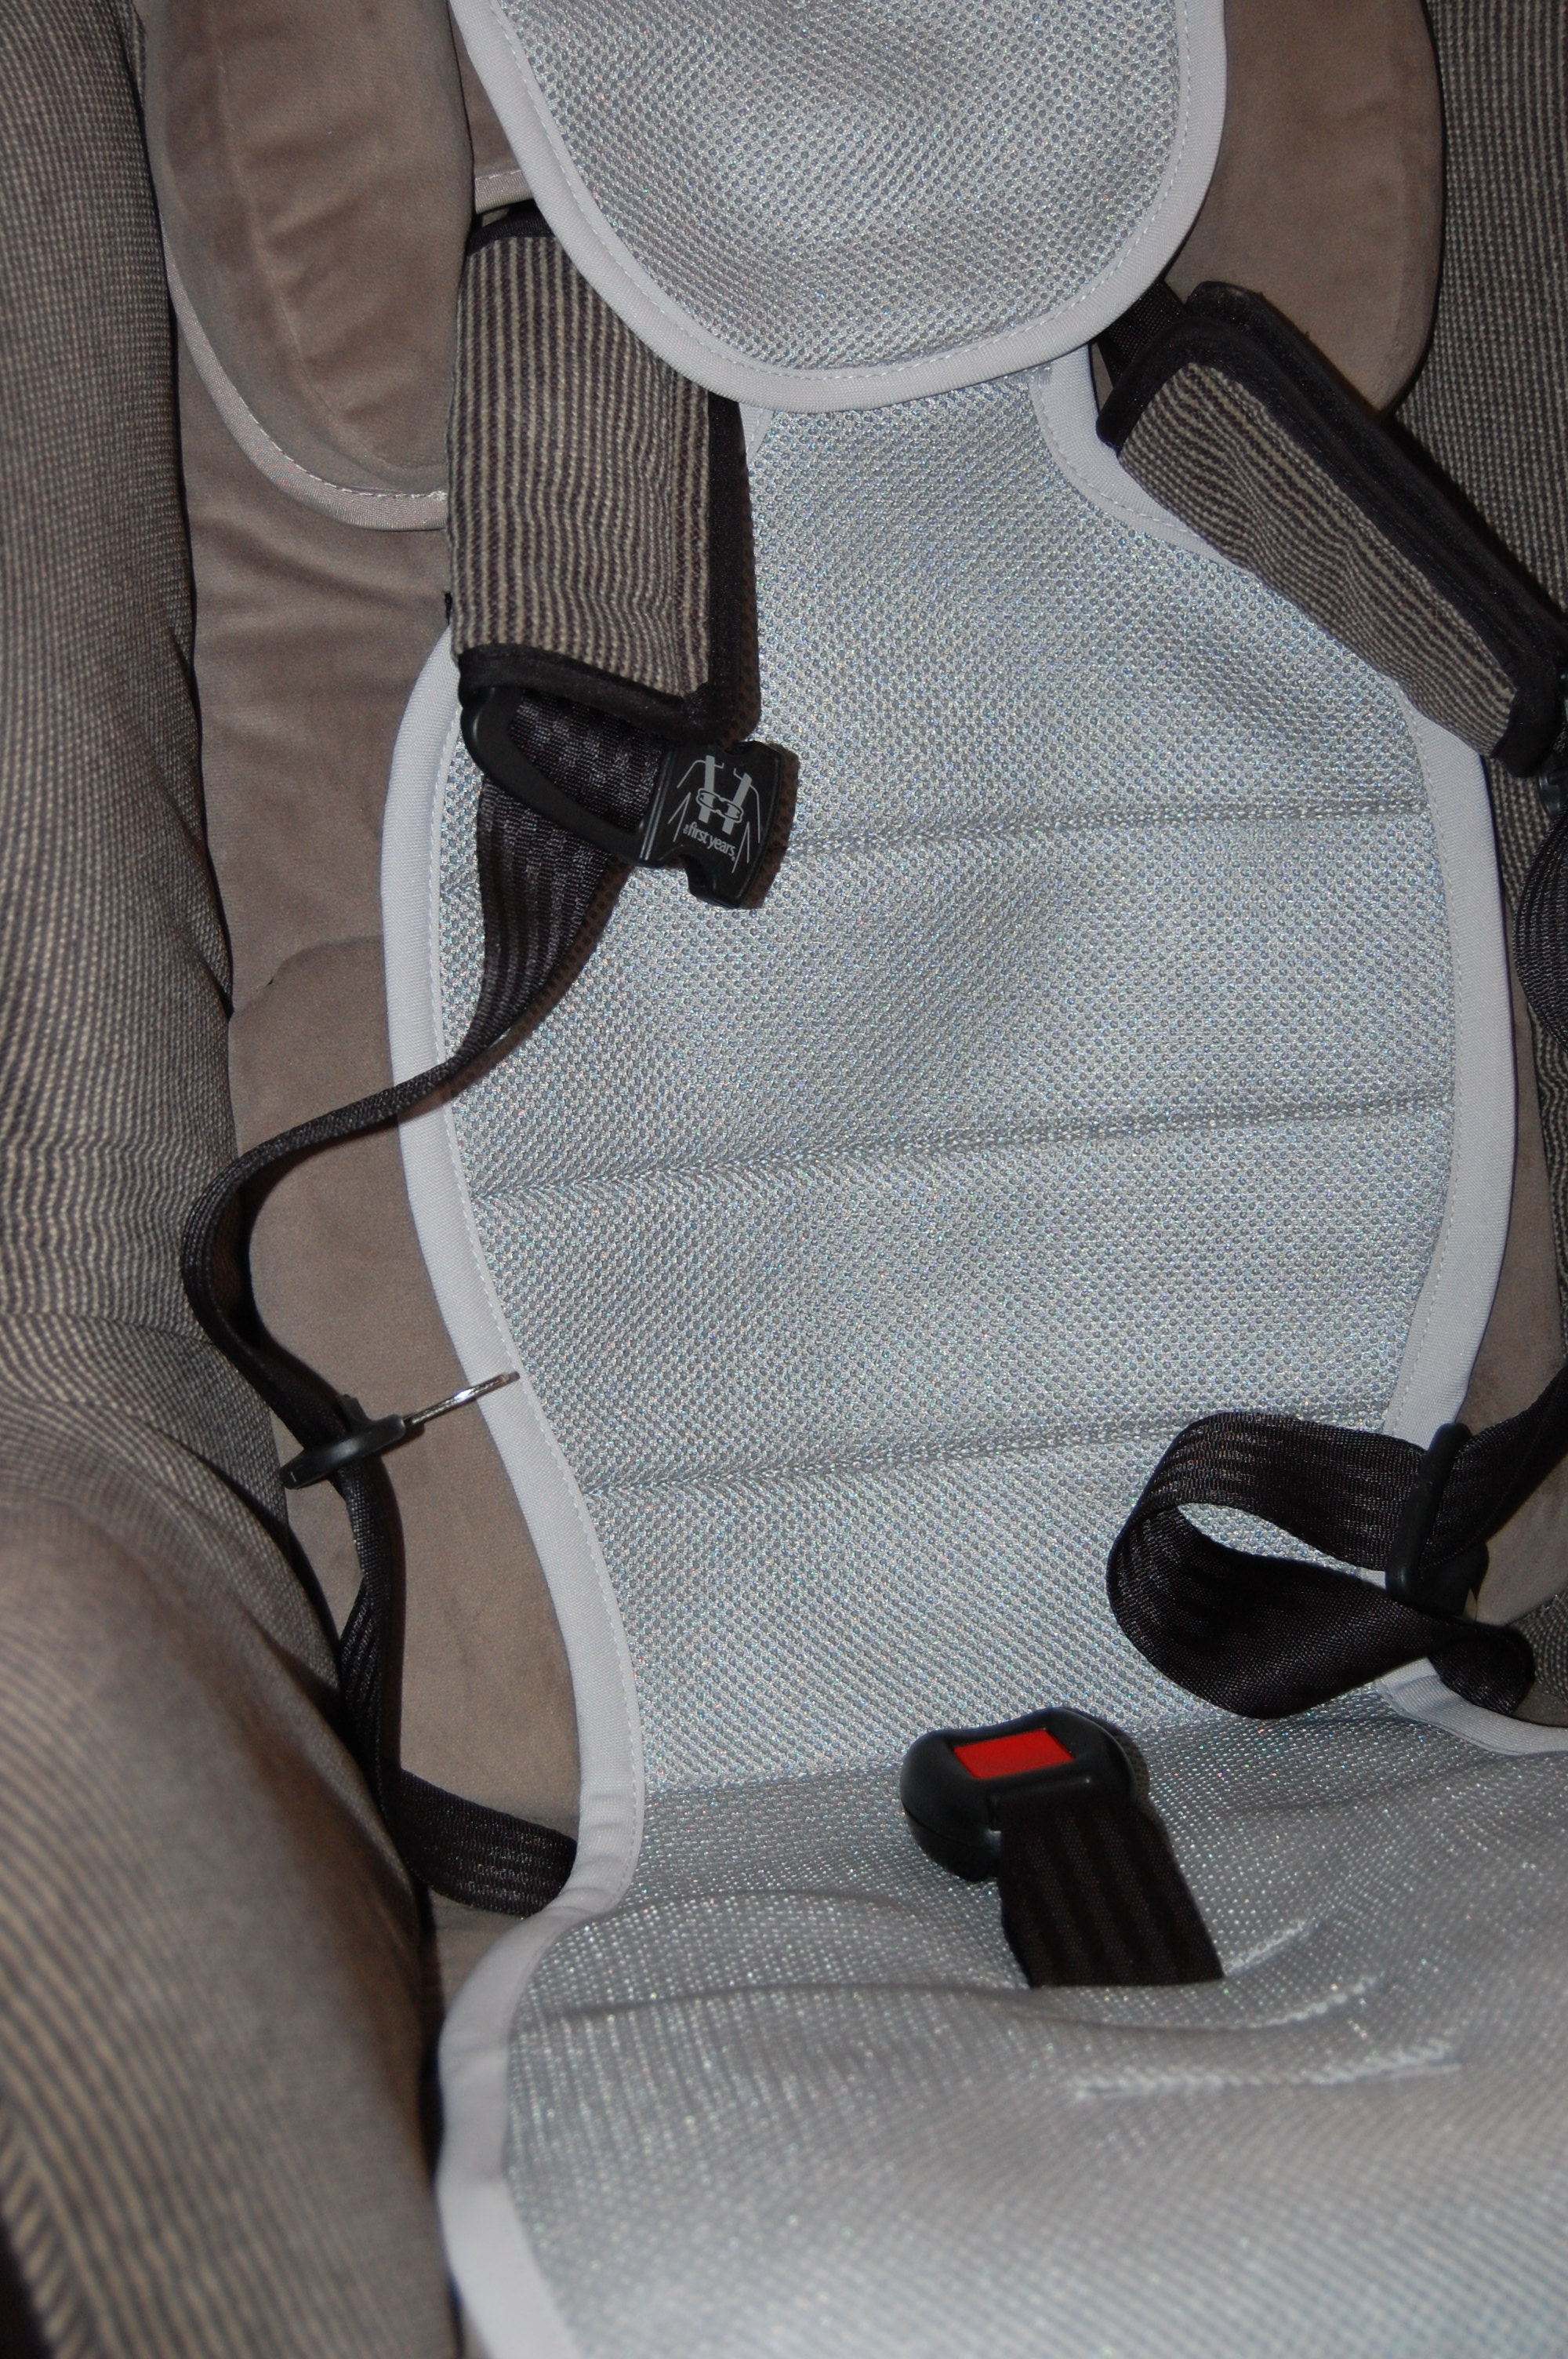 meeno babies car seat liner review and giveaway the children 39 s nook. Black Bedroom Furniture Sets. Home Design Ideas